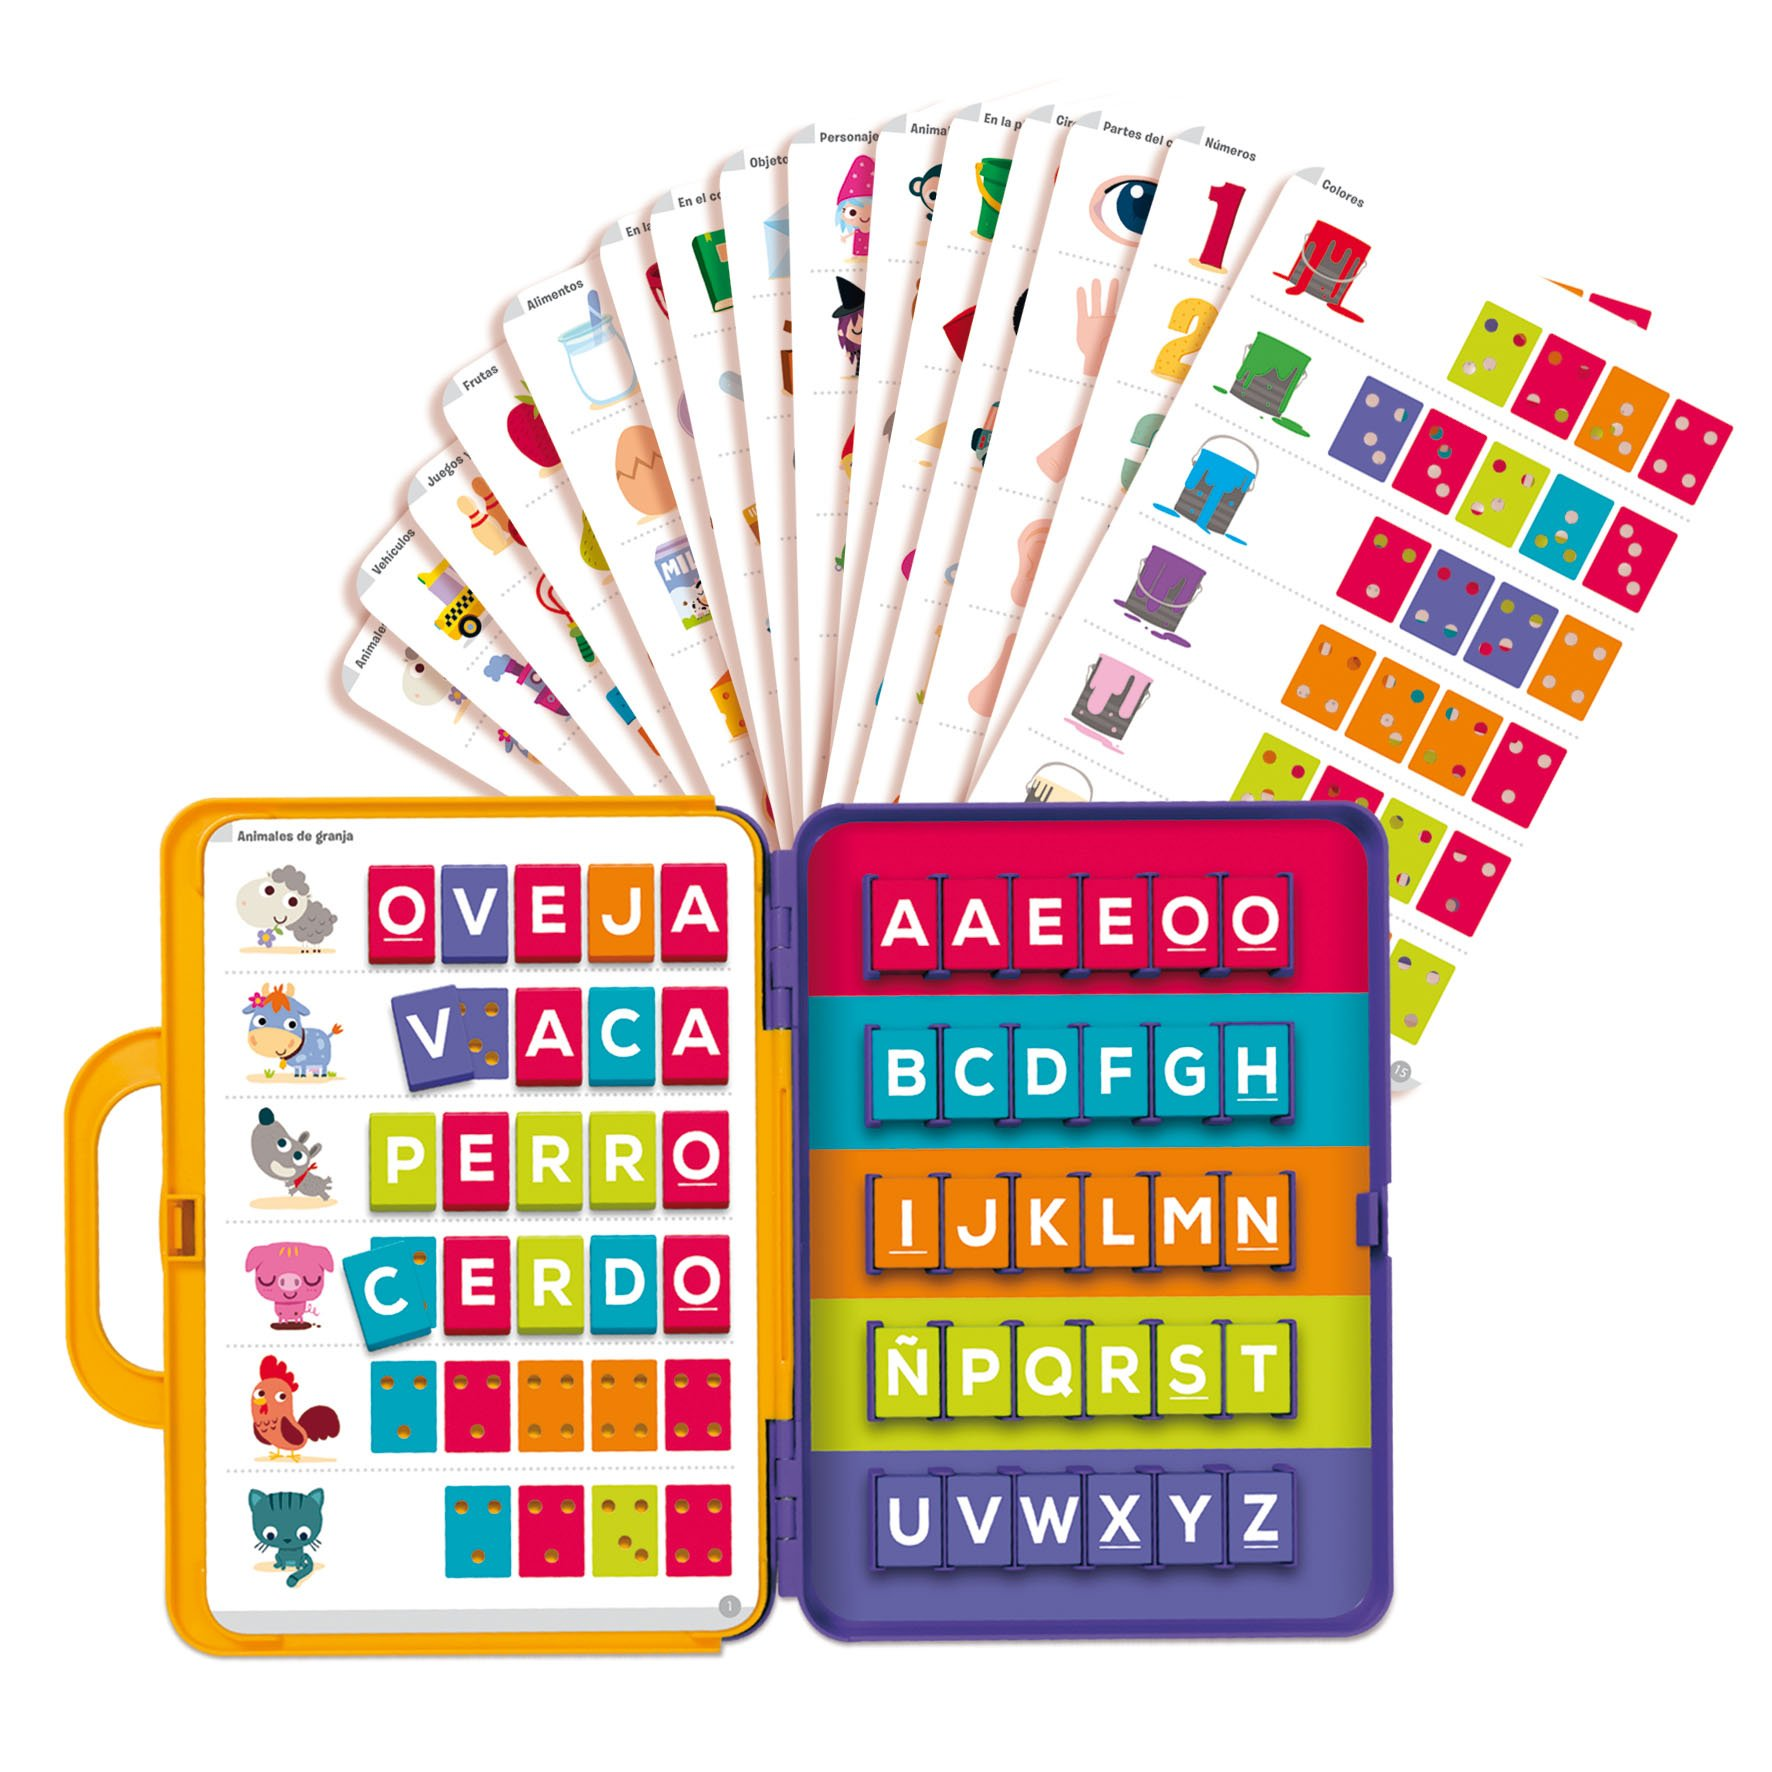 Diset 63752 - Spanish Learn to Read Set, Briefcase, Educational (63715) Educational Toy from 4 Years